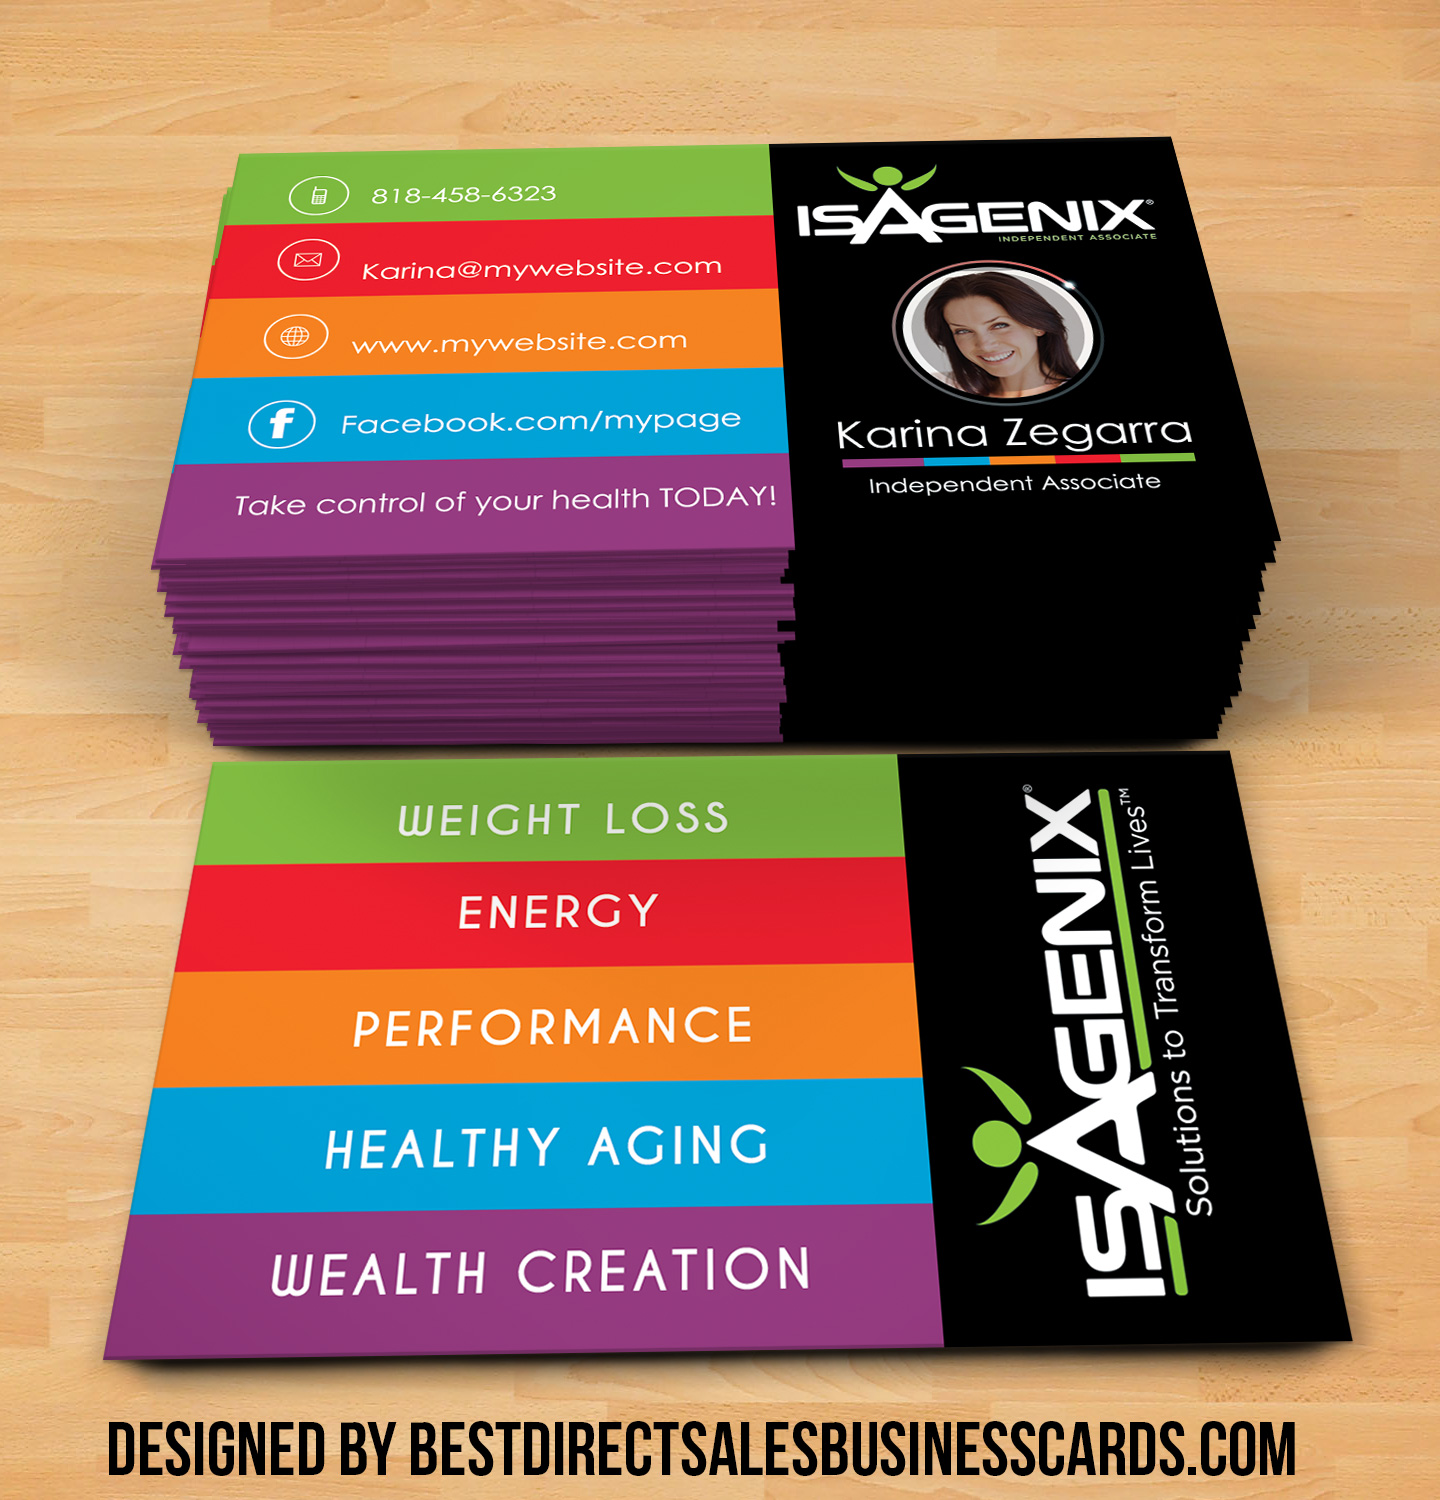 ISAGENIX Business Cards style 4 · KZ Creative Services · line